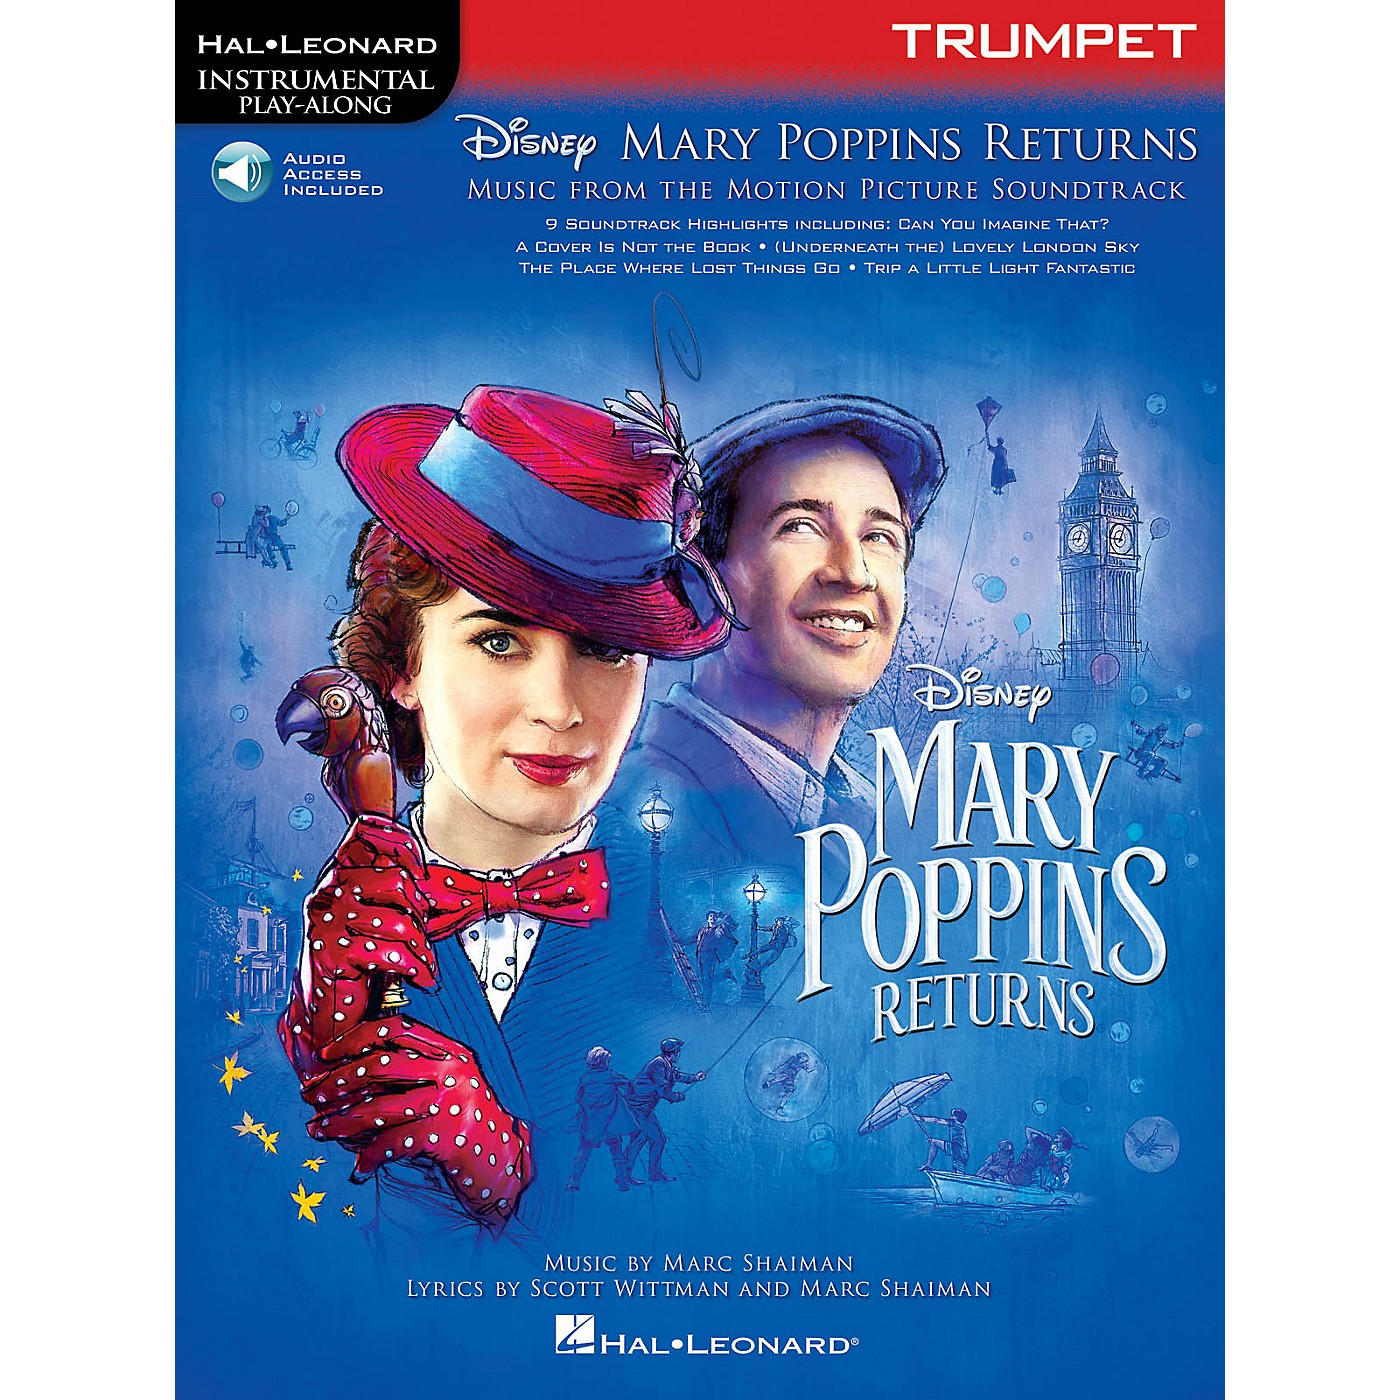 Hal Leonard Mary Poppins Returns for Trumpet Instrumental Play-Along Book/Audio Online thumbnail